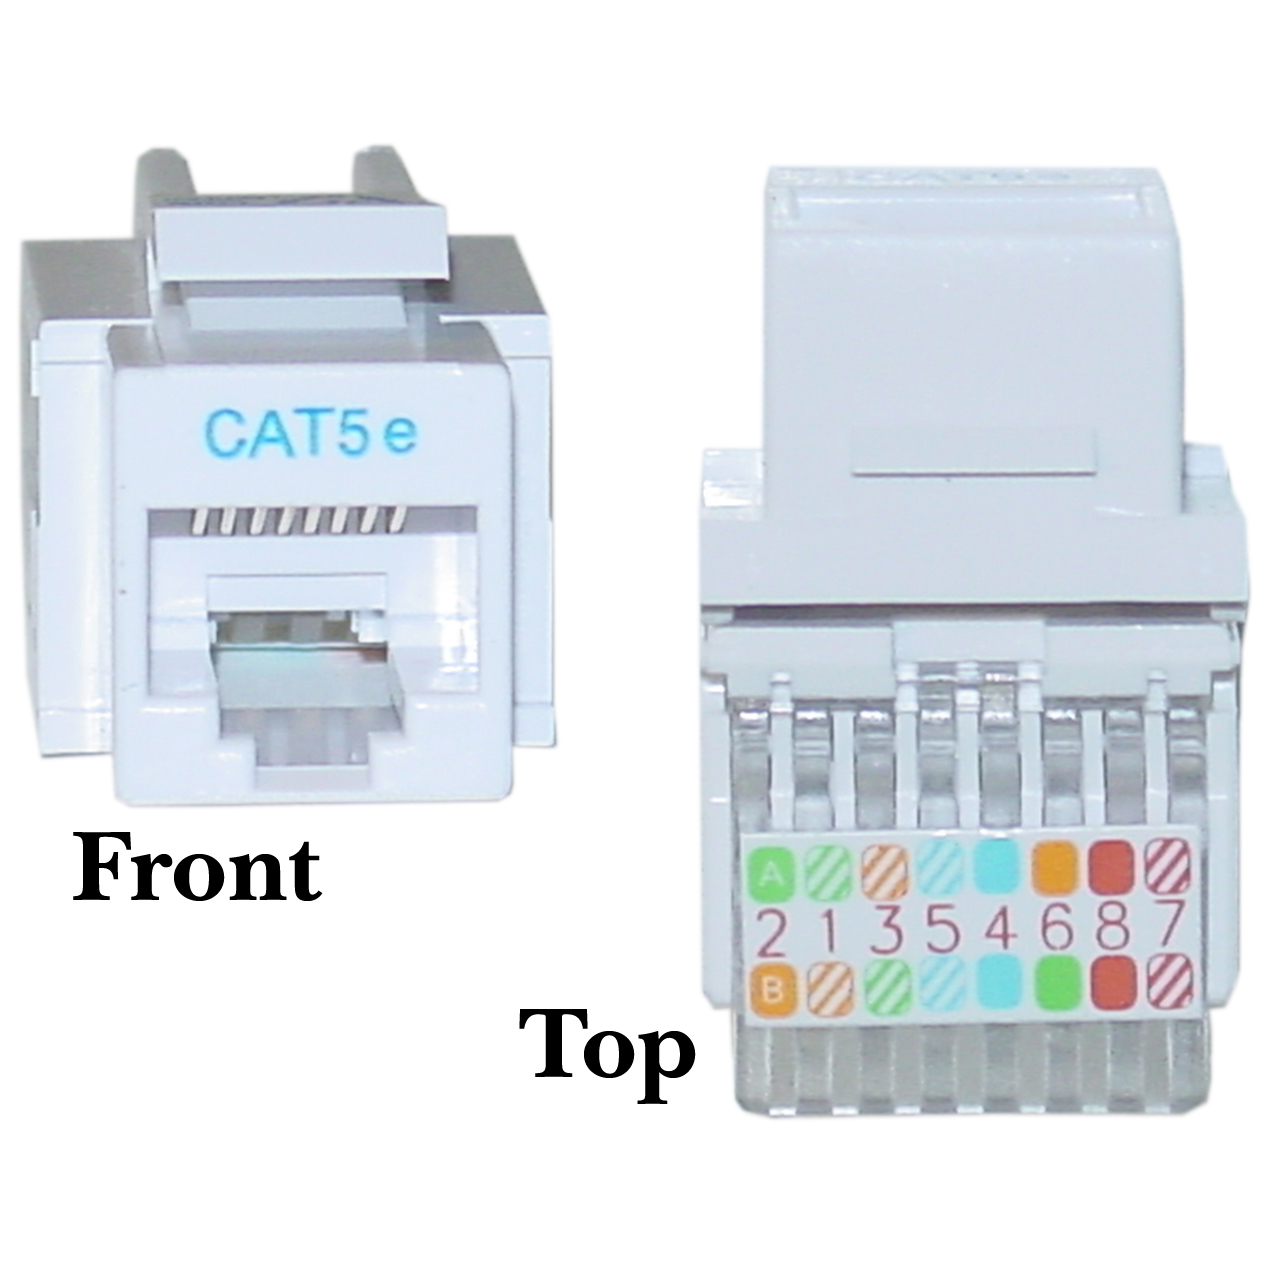 Rj45 Jack Diagram Great Design Of Wiring T568b On Cat5e Get Free Image About Wall Connection Pdf